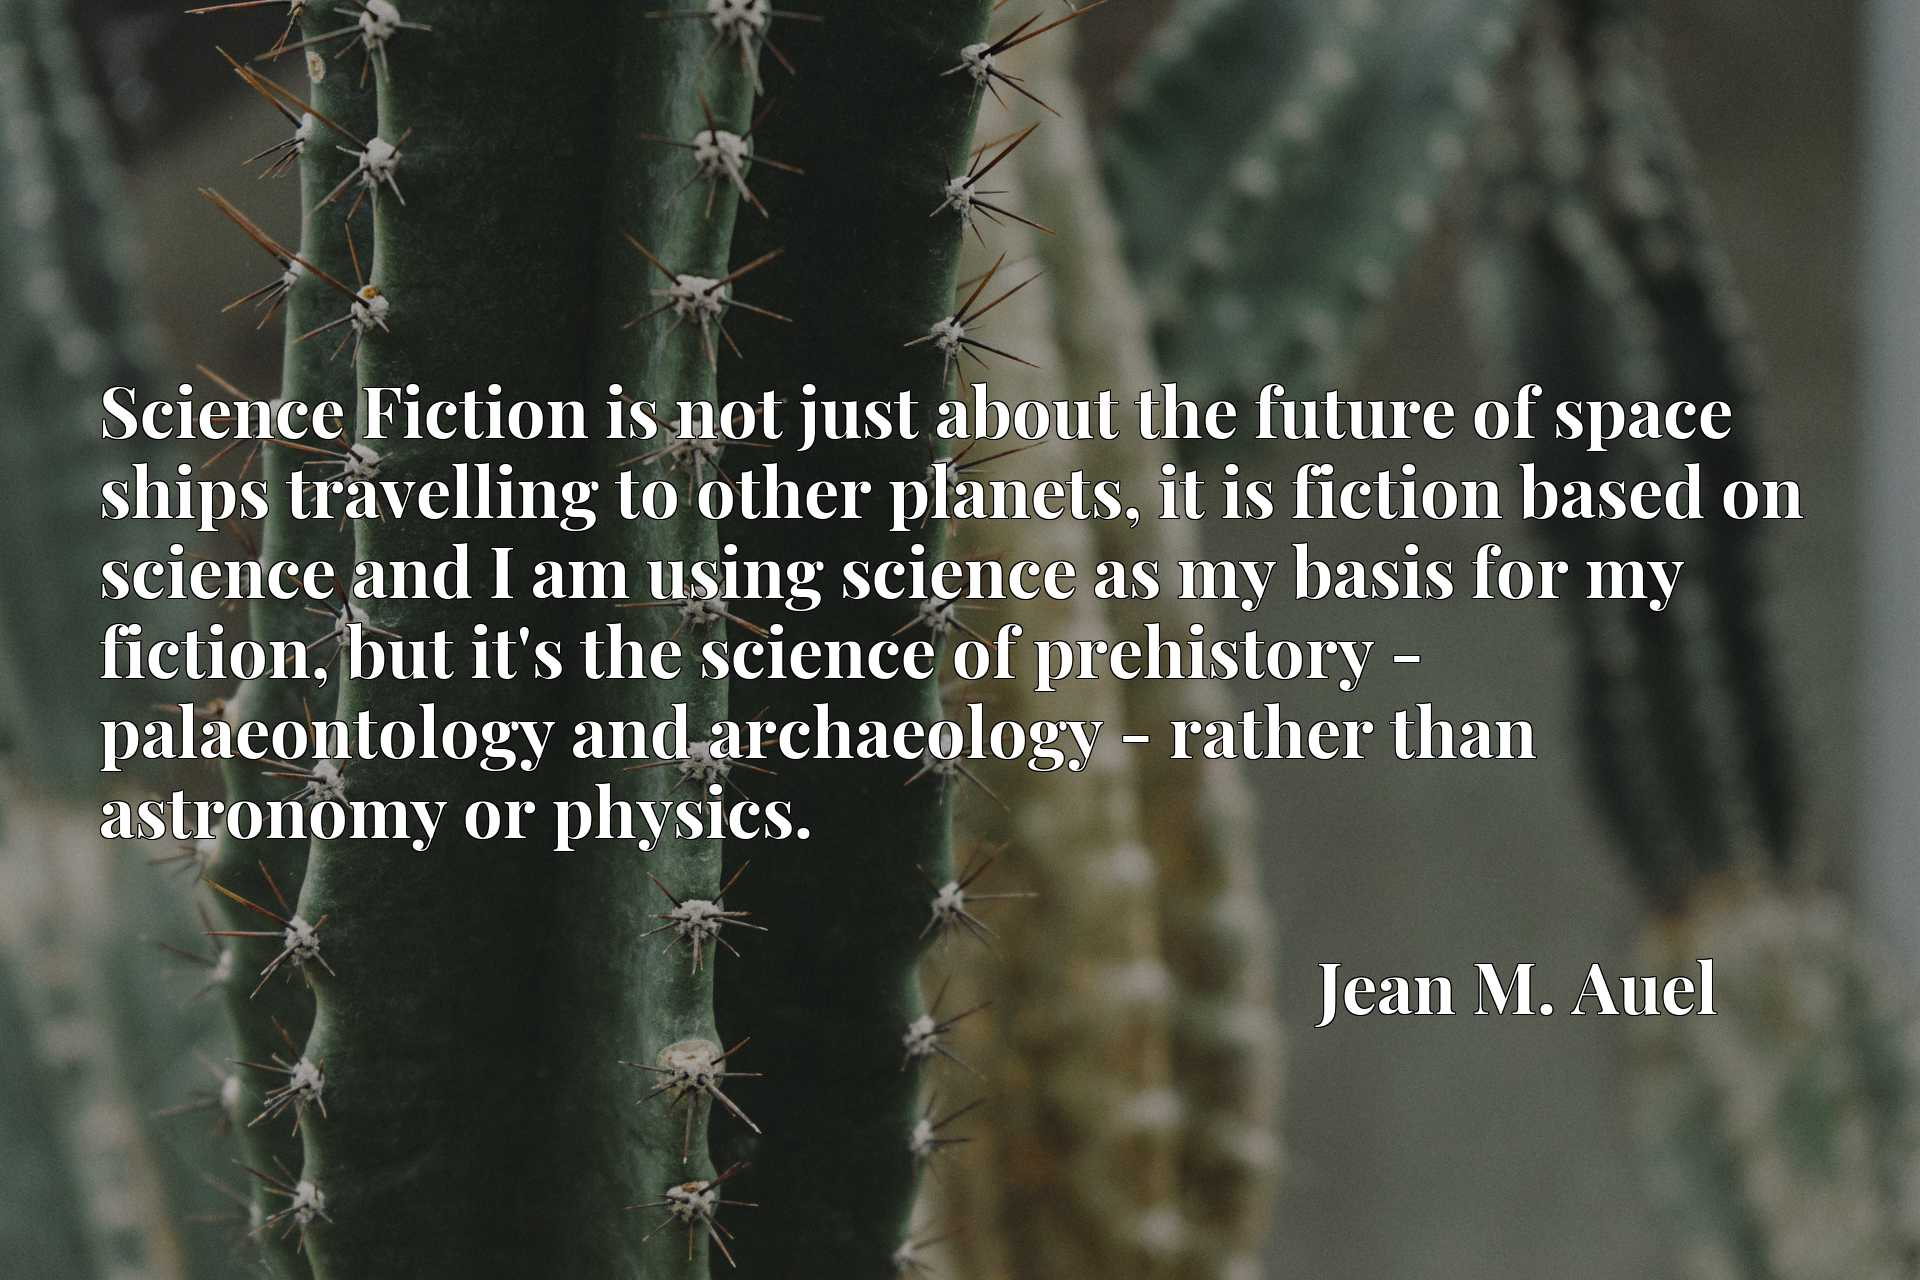 Science Fiction is not just about the future of space ships travelling to other planets, it is fiction based on science and I am using science as my basis for my fiction, but it's the science of prehistory - palaeontology and archaeology - rather than astronomy or physics.